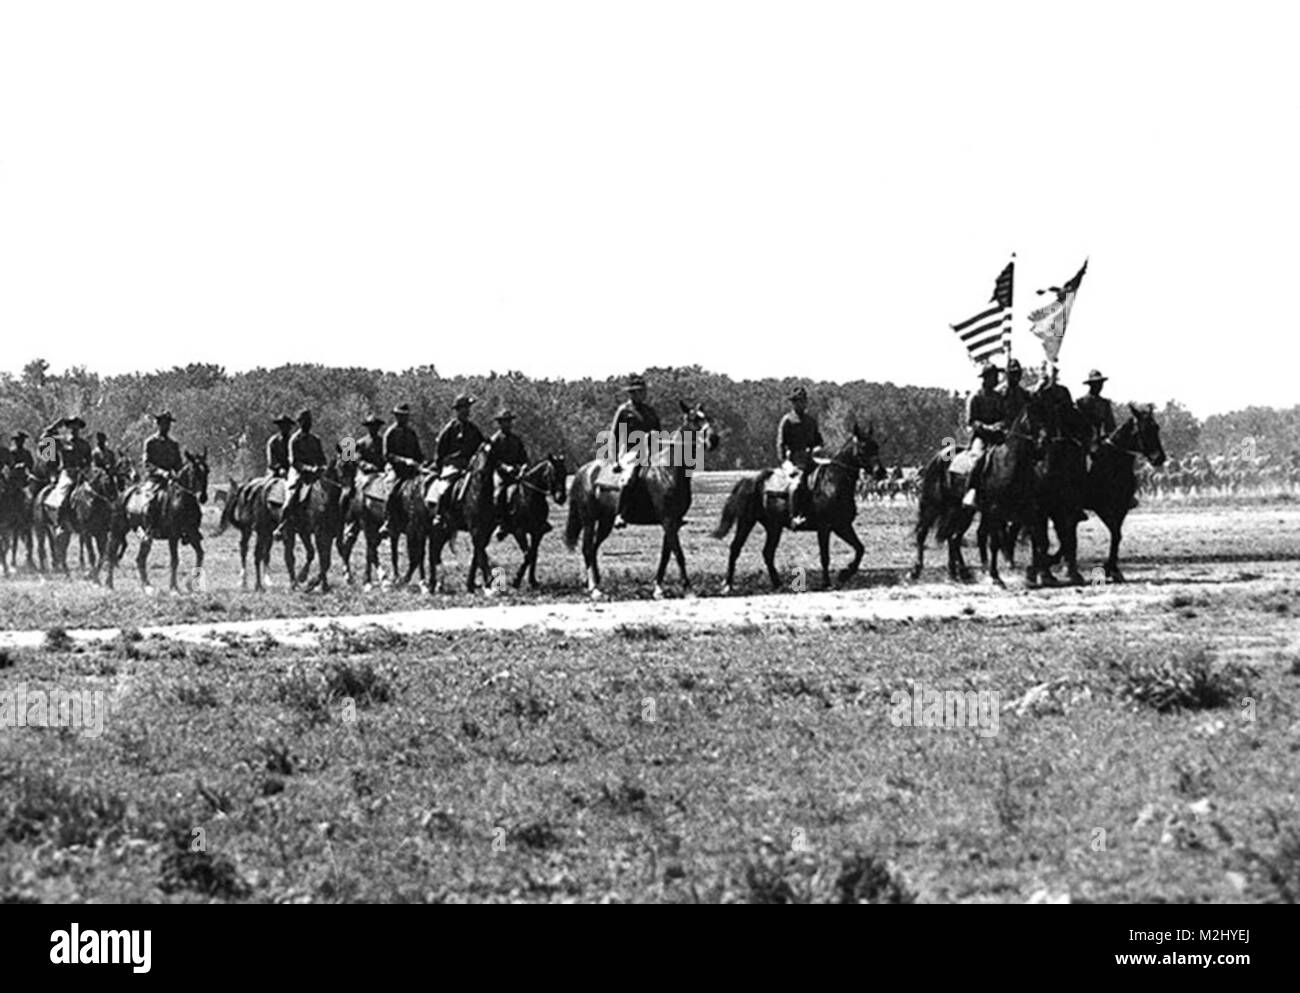 Buffalo Soldiers, 9th Cavalry Regiment, 1941 - Stock Image